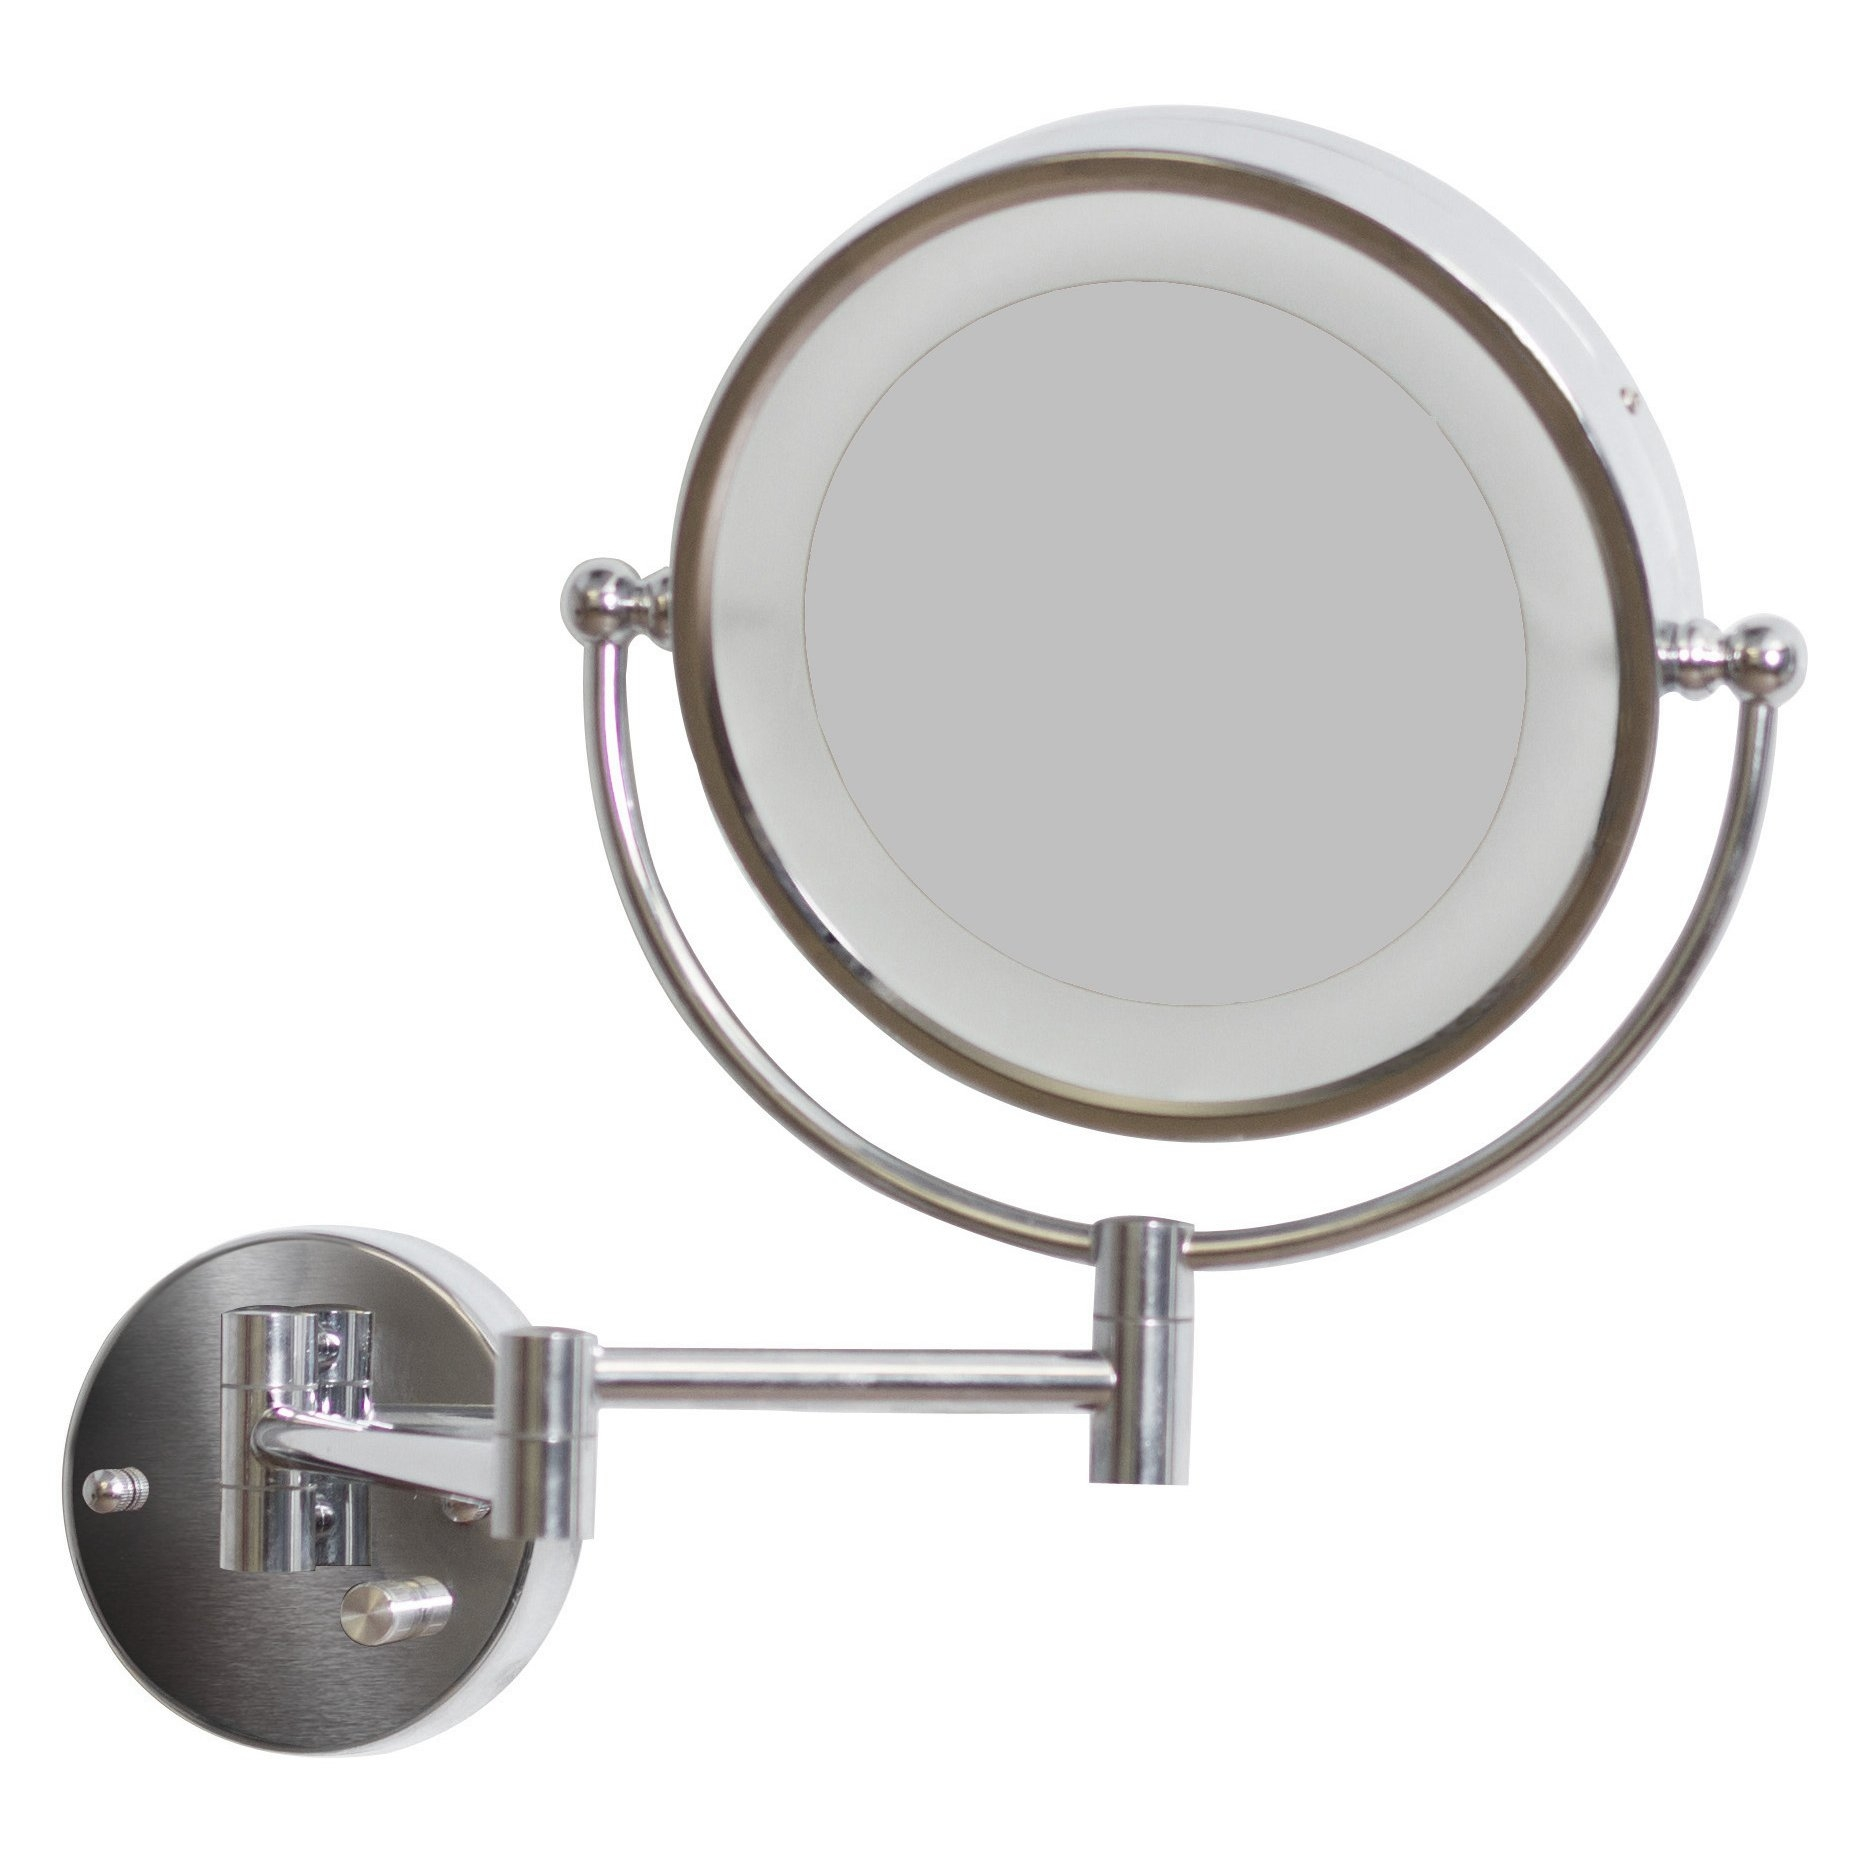 Brass Magnifying Wall Mirror Brass Magnifying Wall Mirror dar home co round brass led wall mount magnifying wall mirror 1863 X 1863